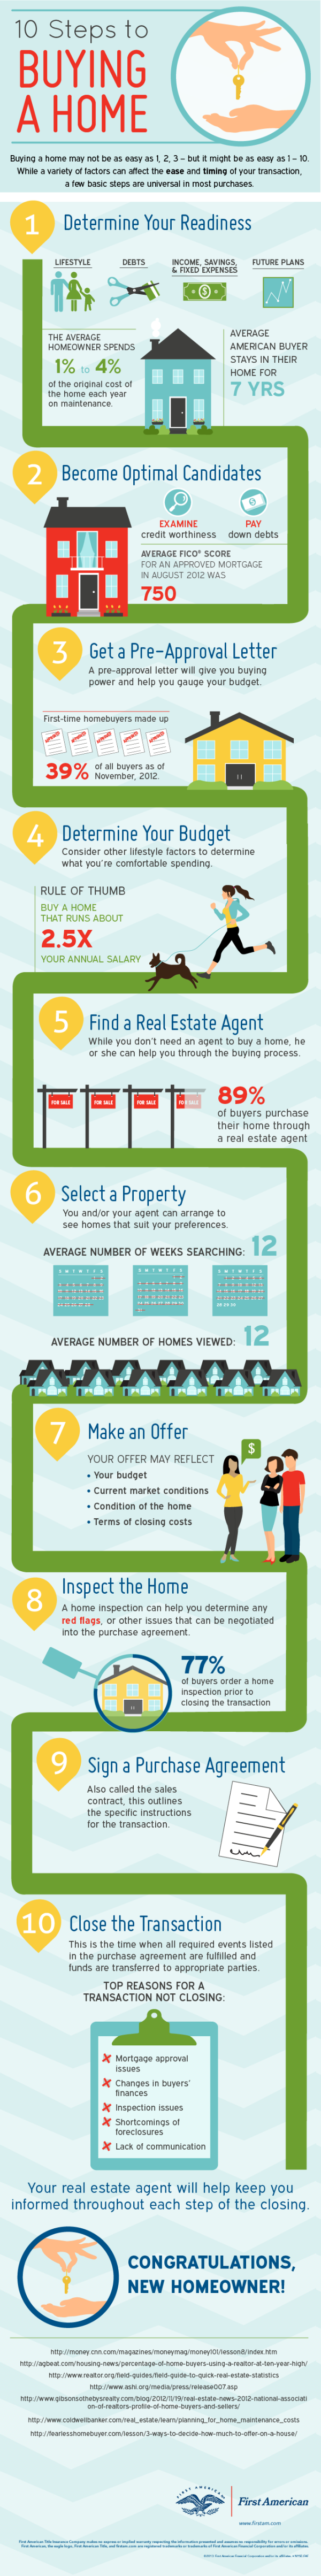 10 Steps to Buying a Home Infographic First American Title